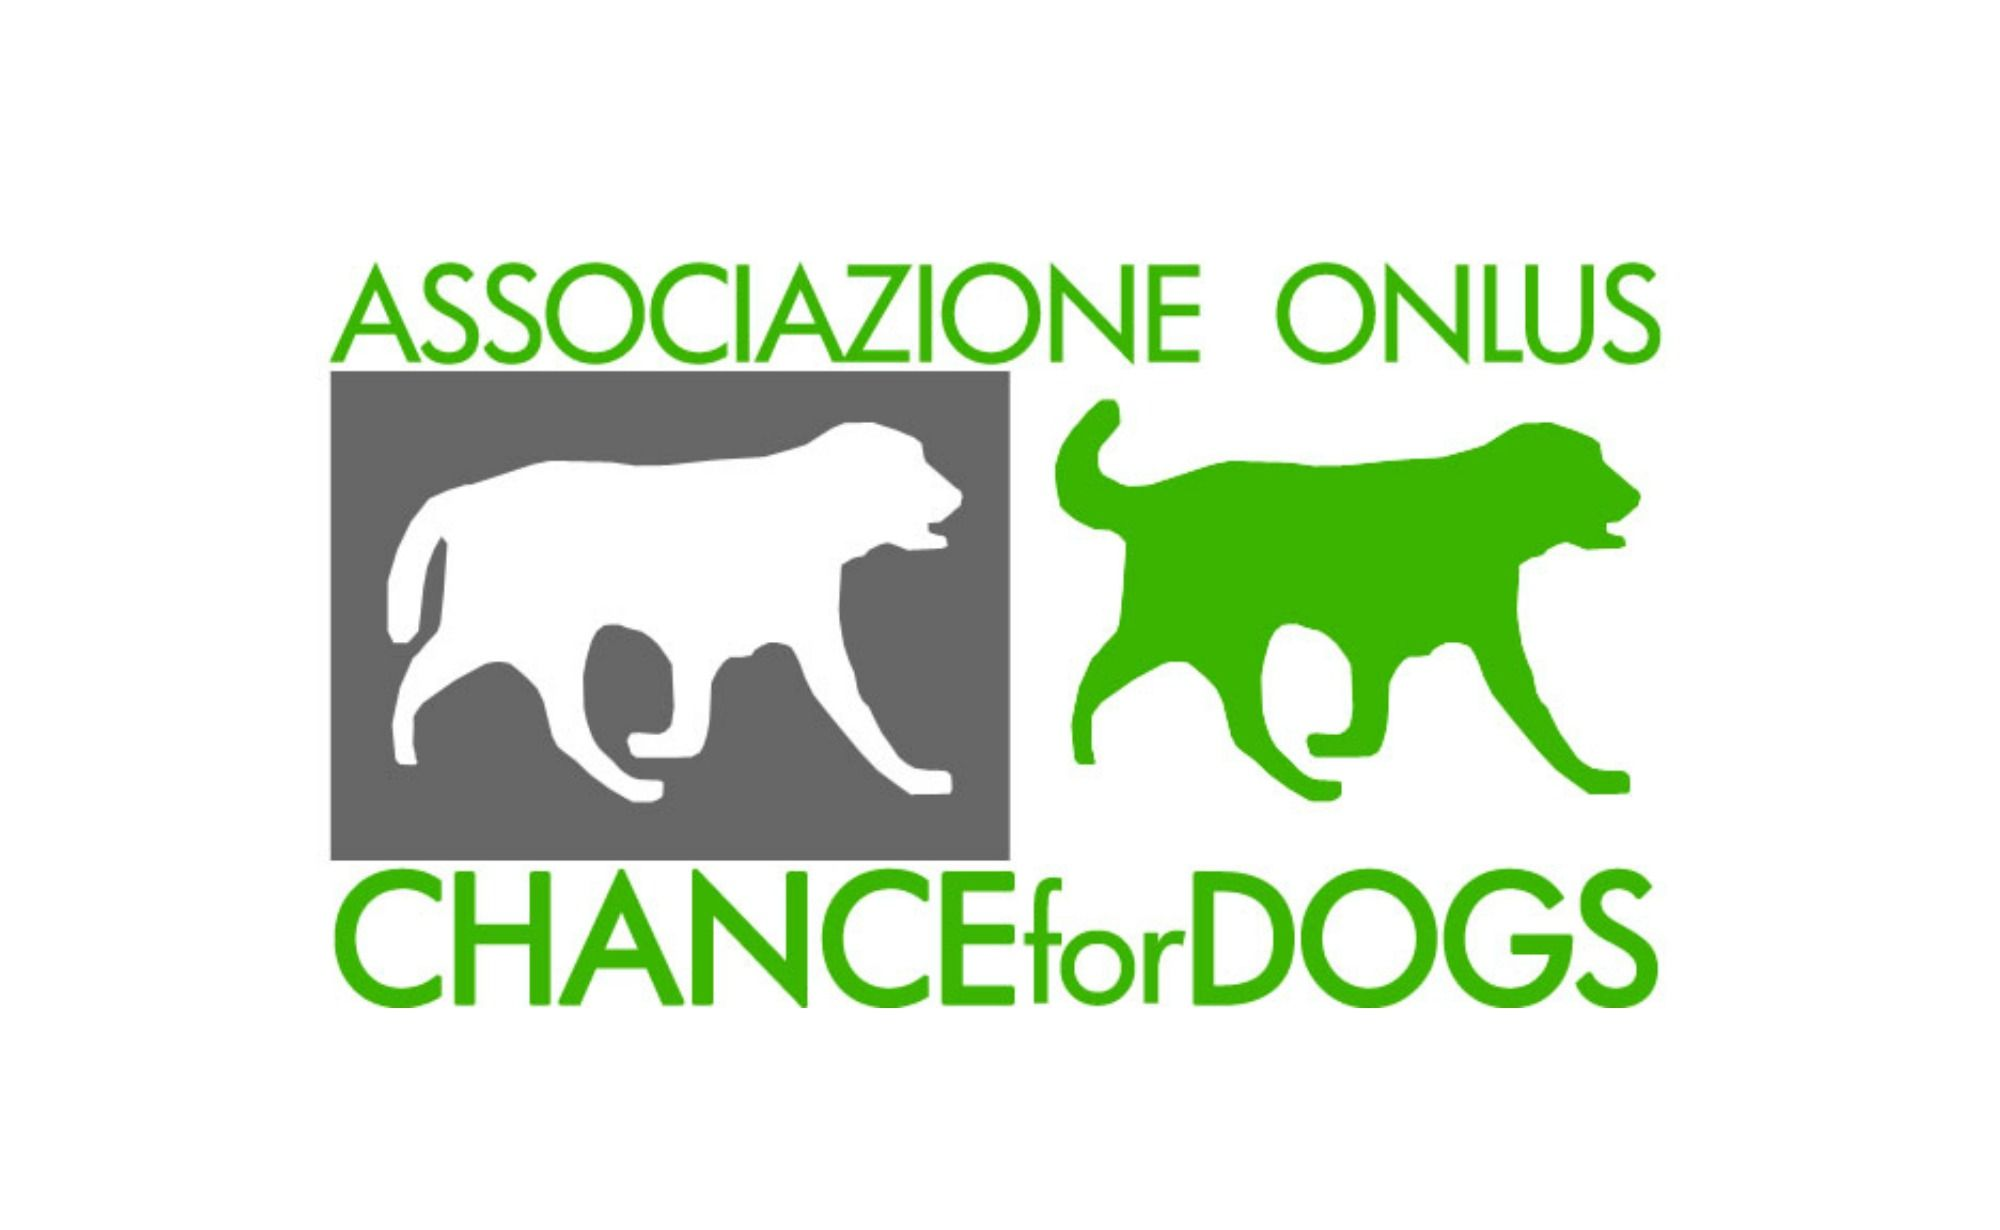 Logo dell'associazione Assoc. Onlus Chance for Dogs